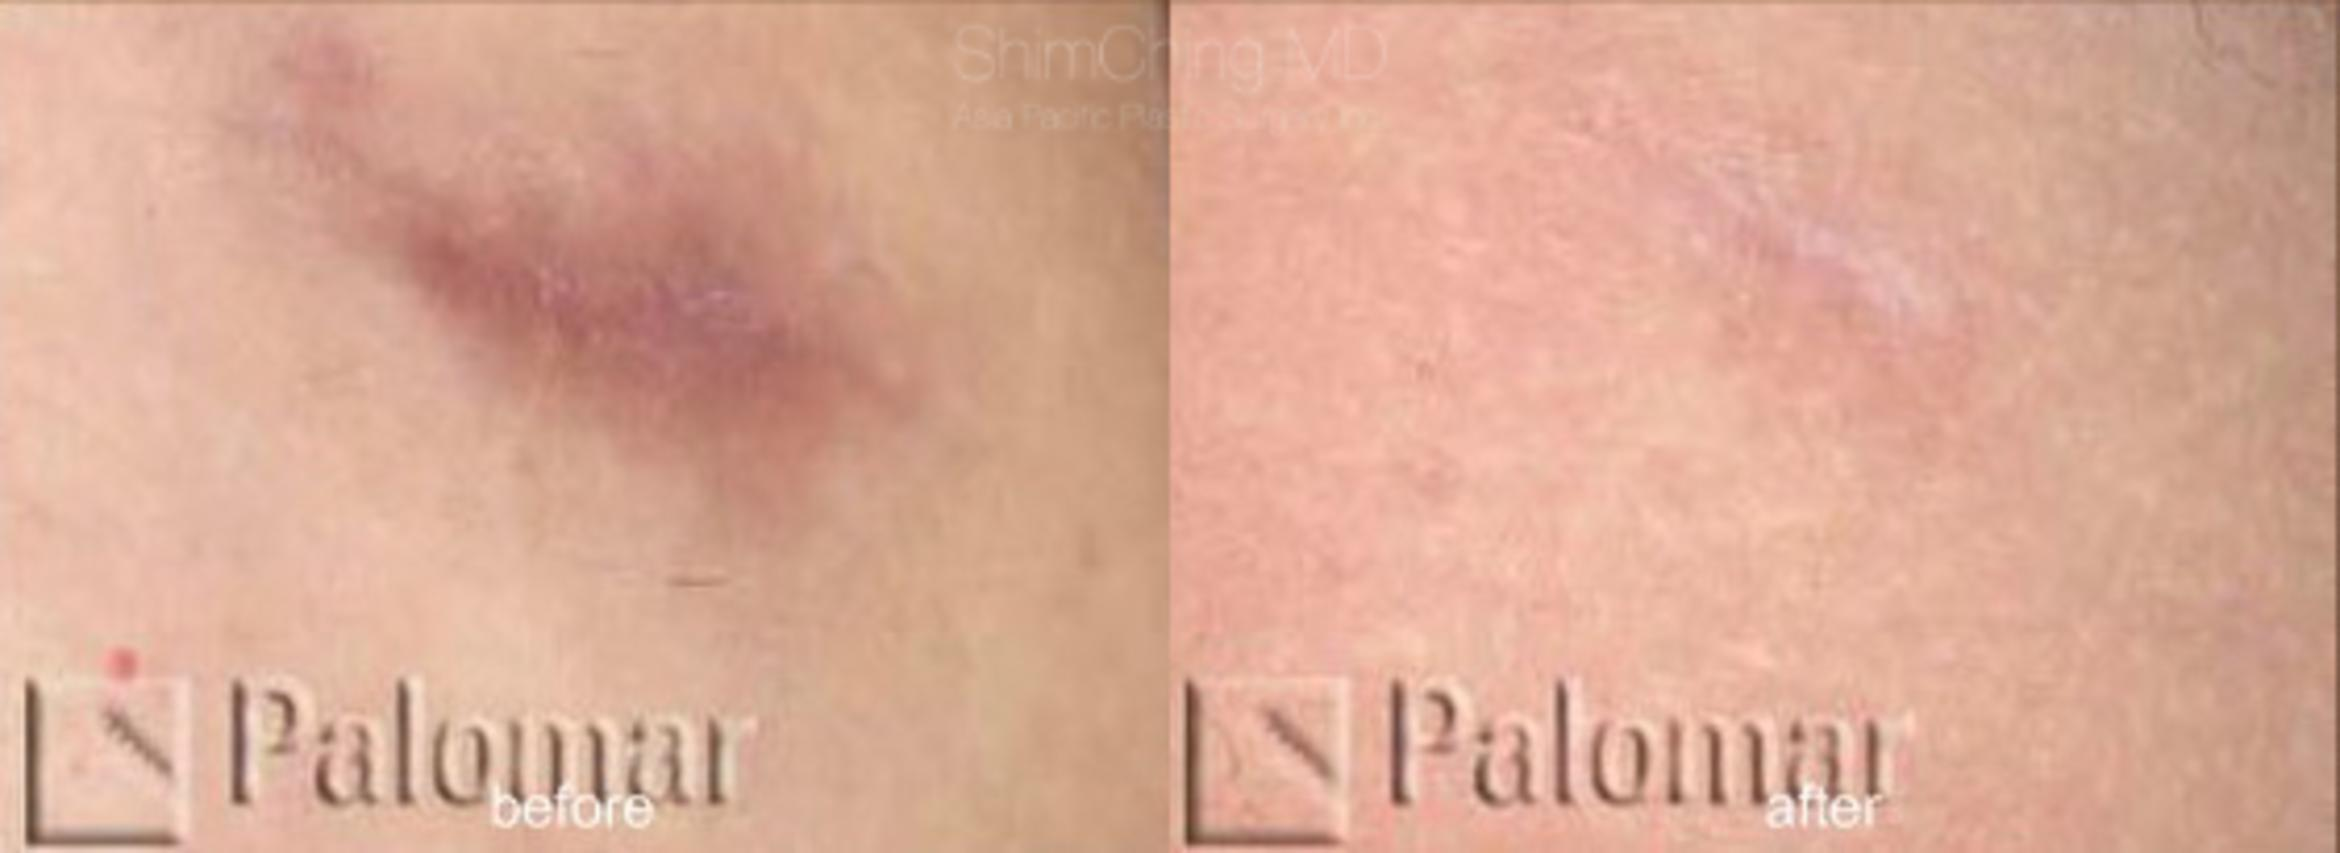 Laser Resurfacing Case 141 Before & After View #1 | Honolulu, HI | Shim Ching, MD: Asia Pacific Plastic Surgery